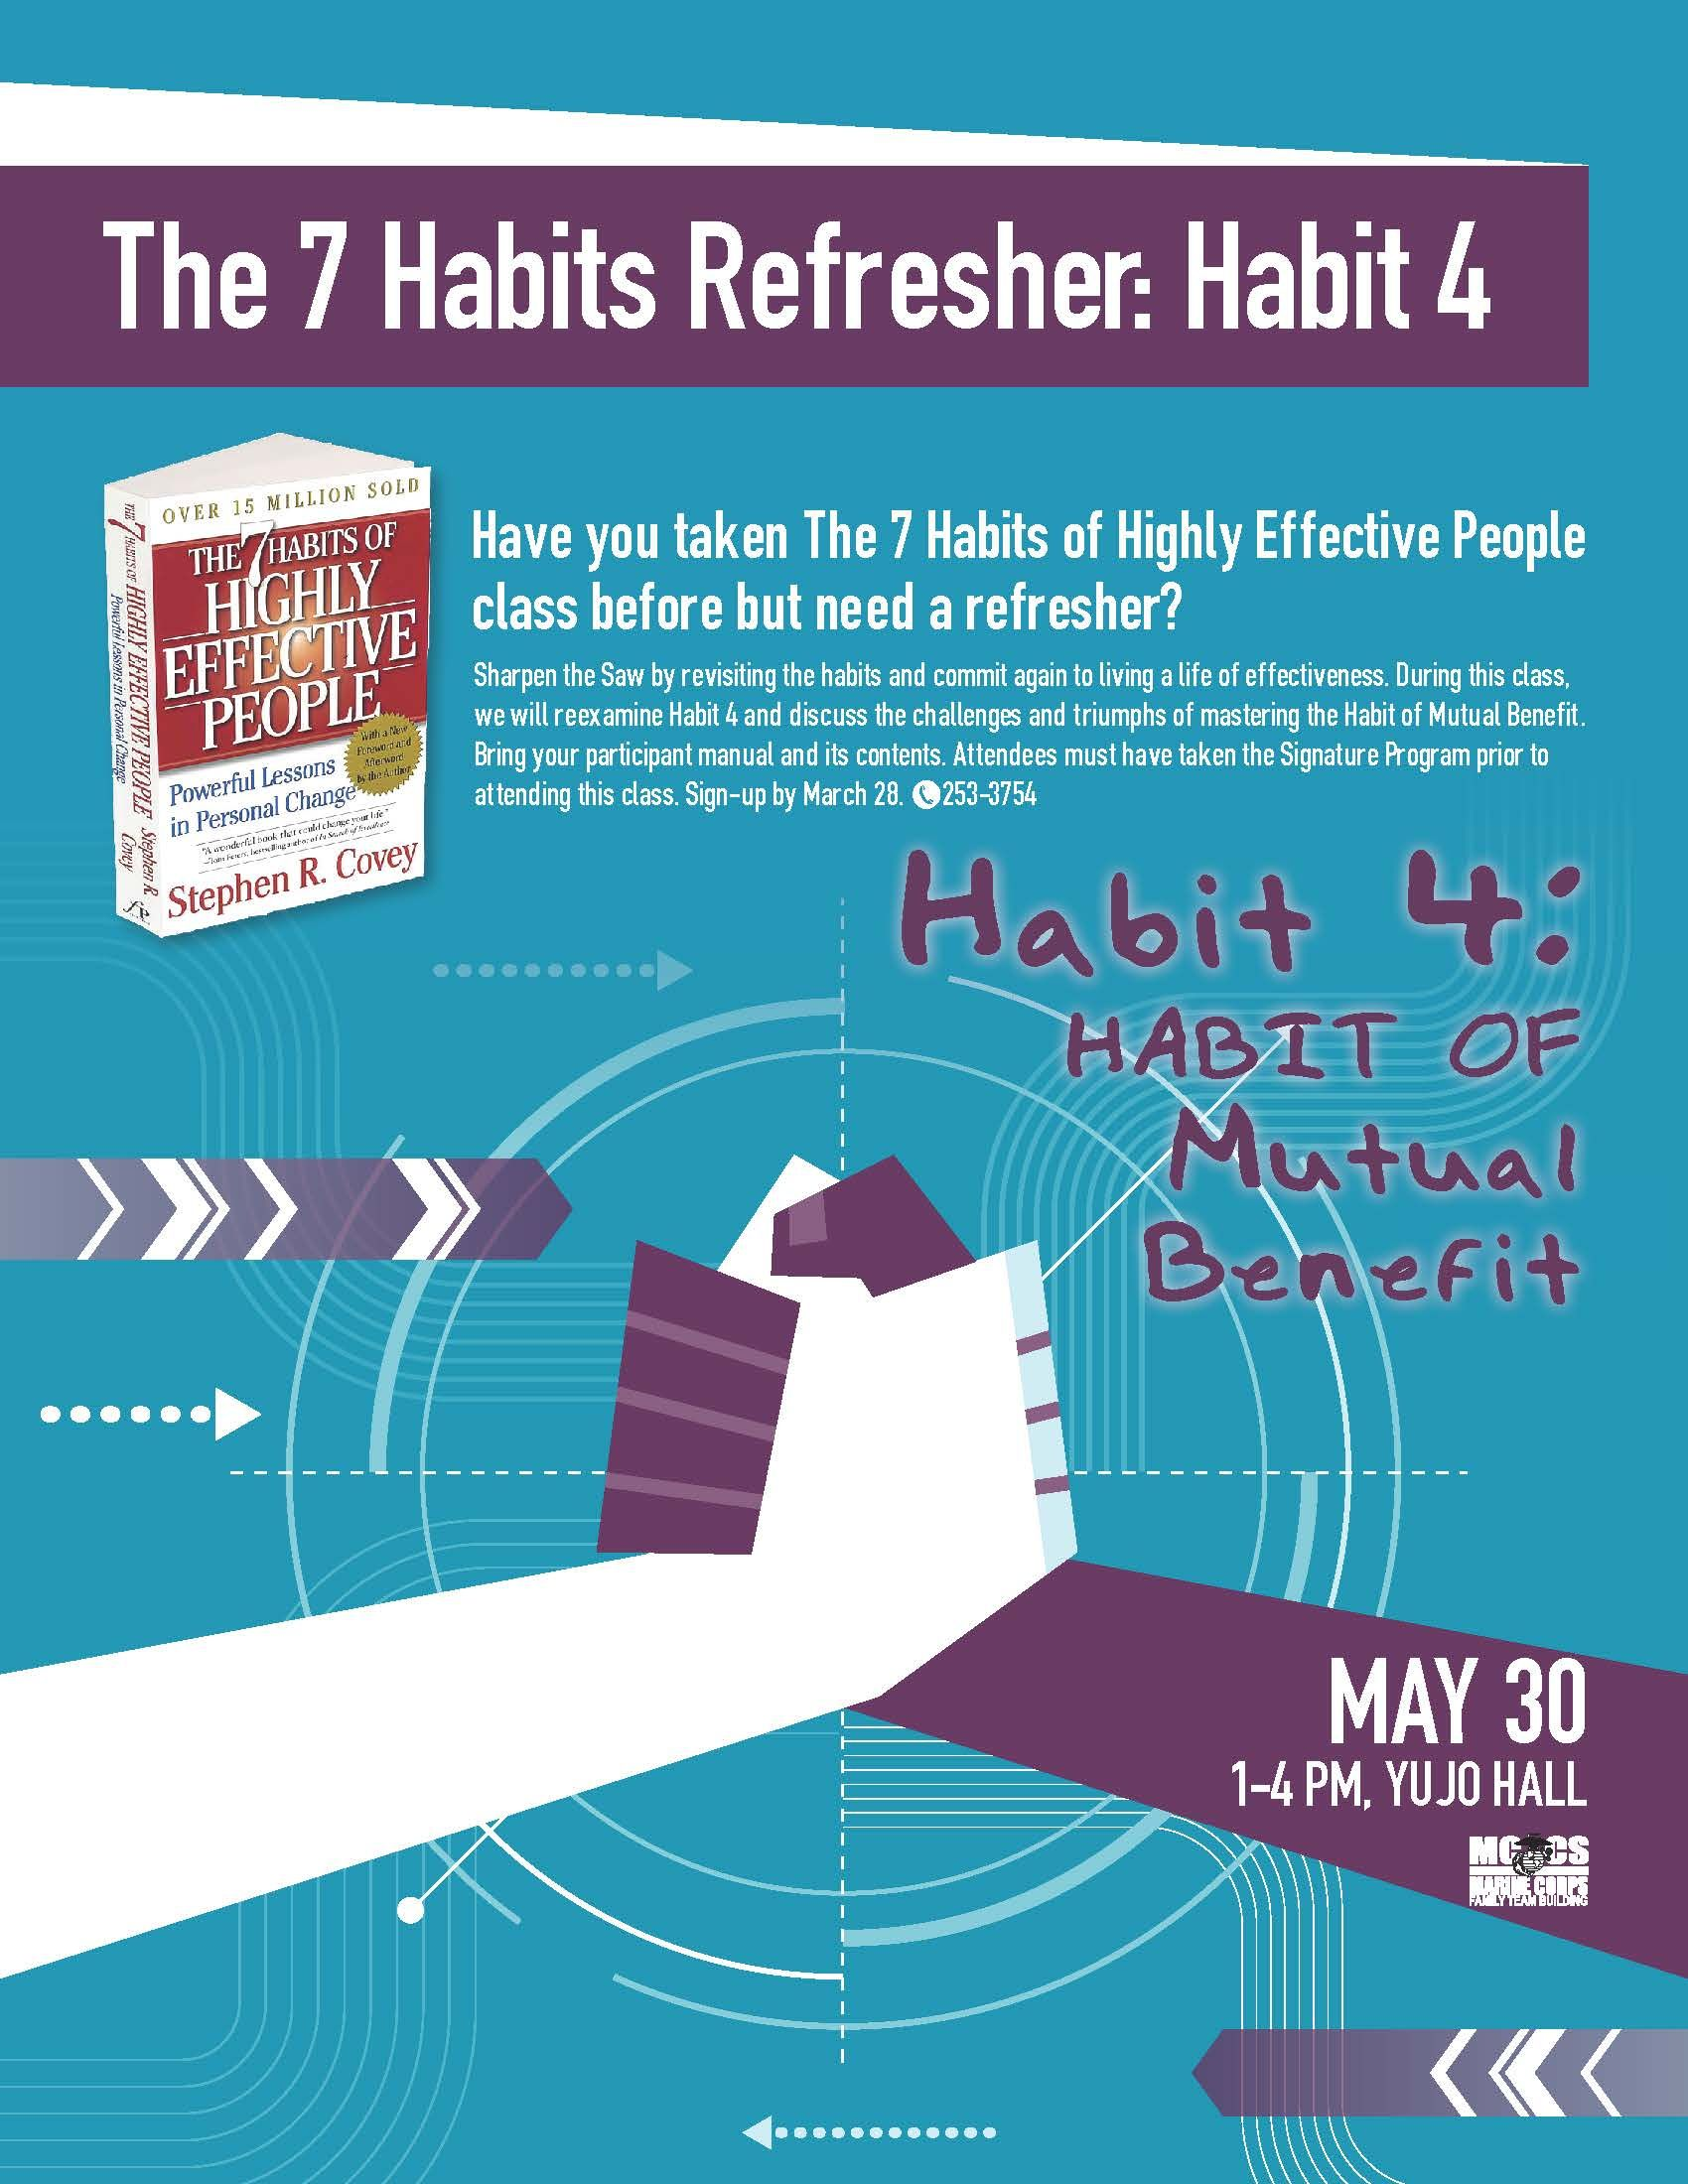 The 7 Habits Refresher Habit 4